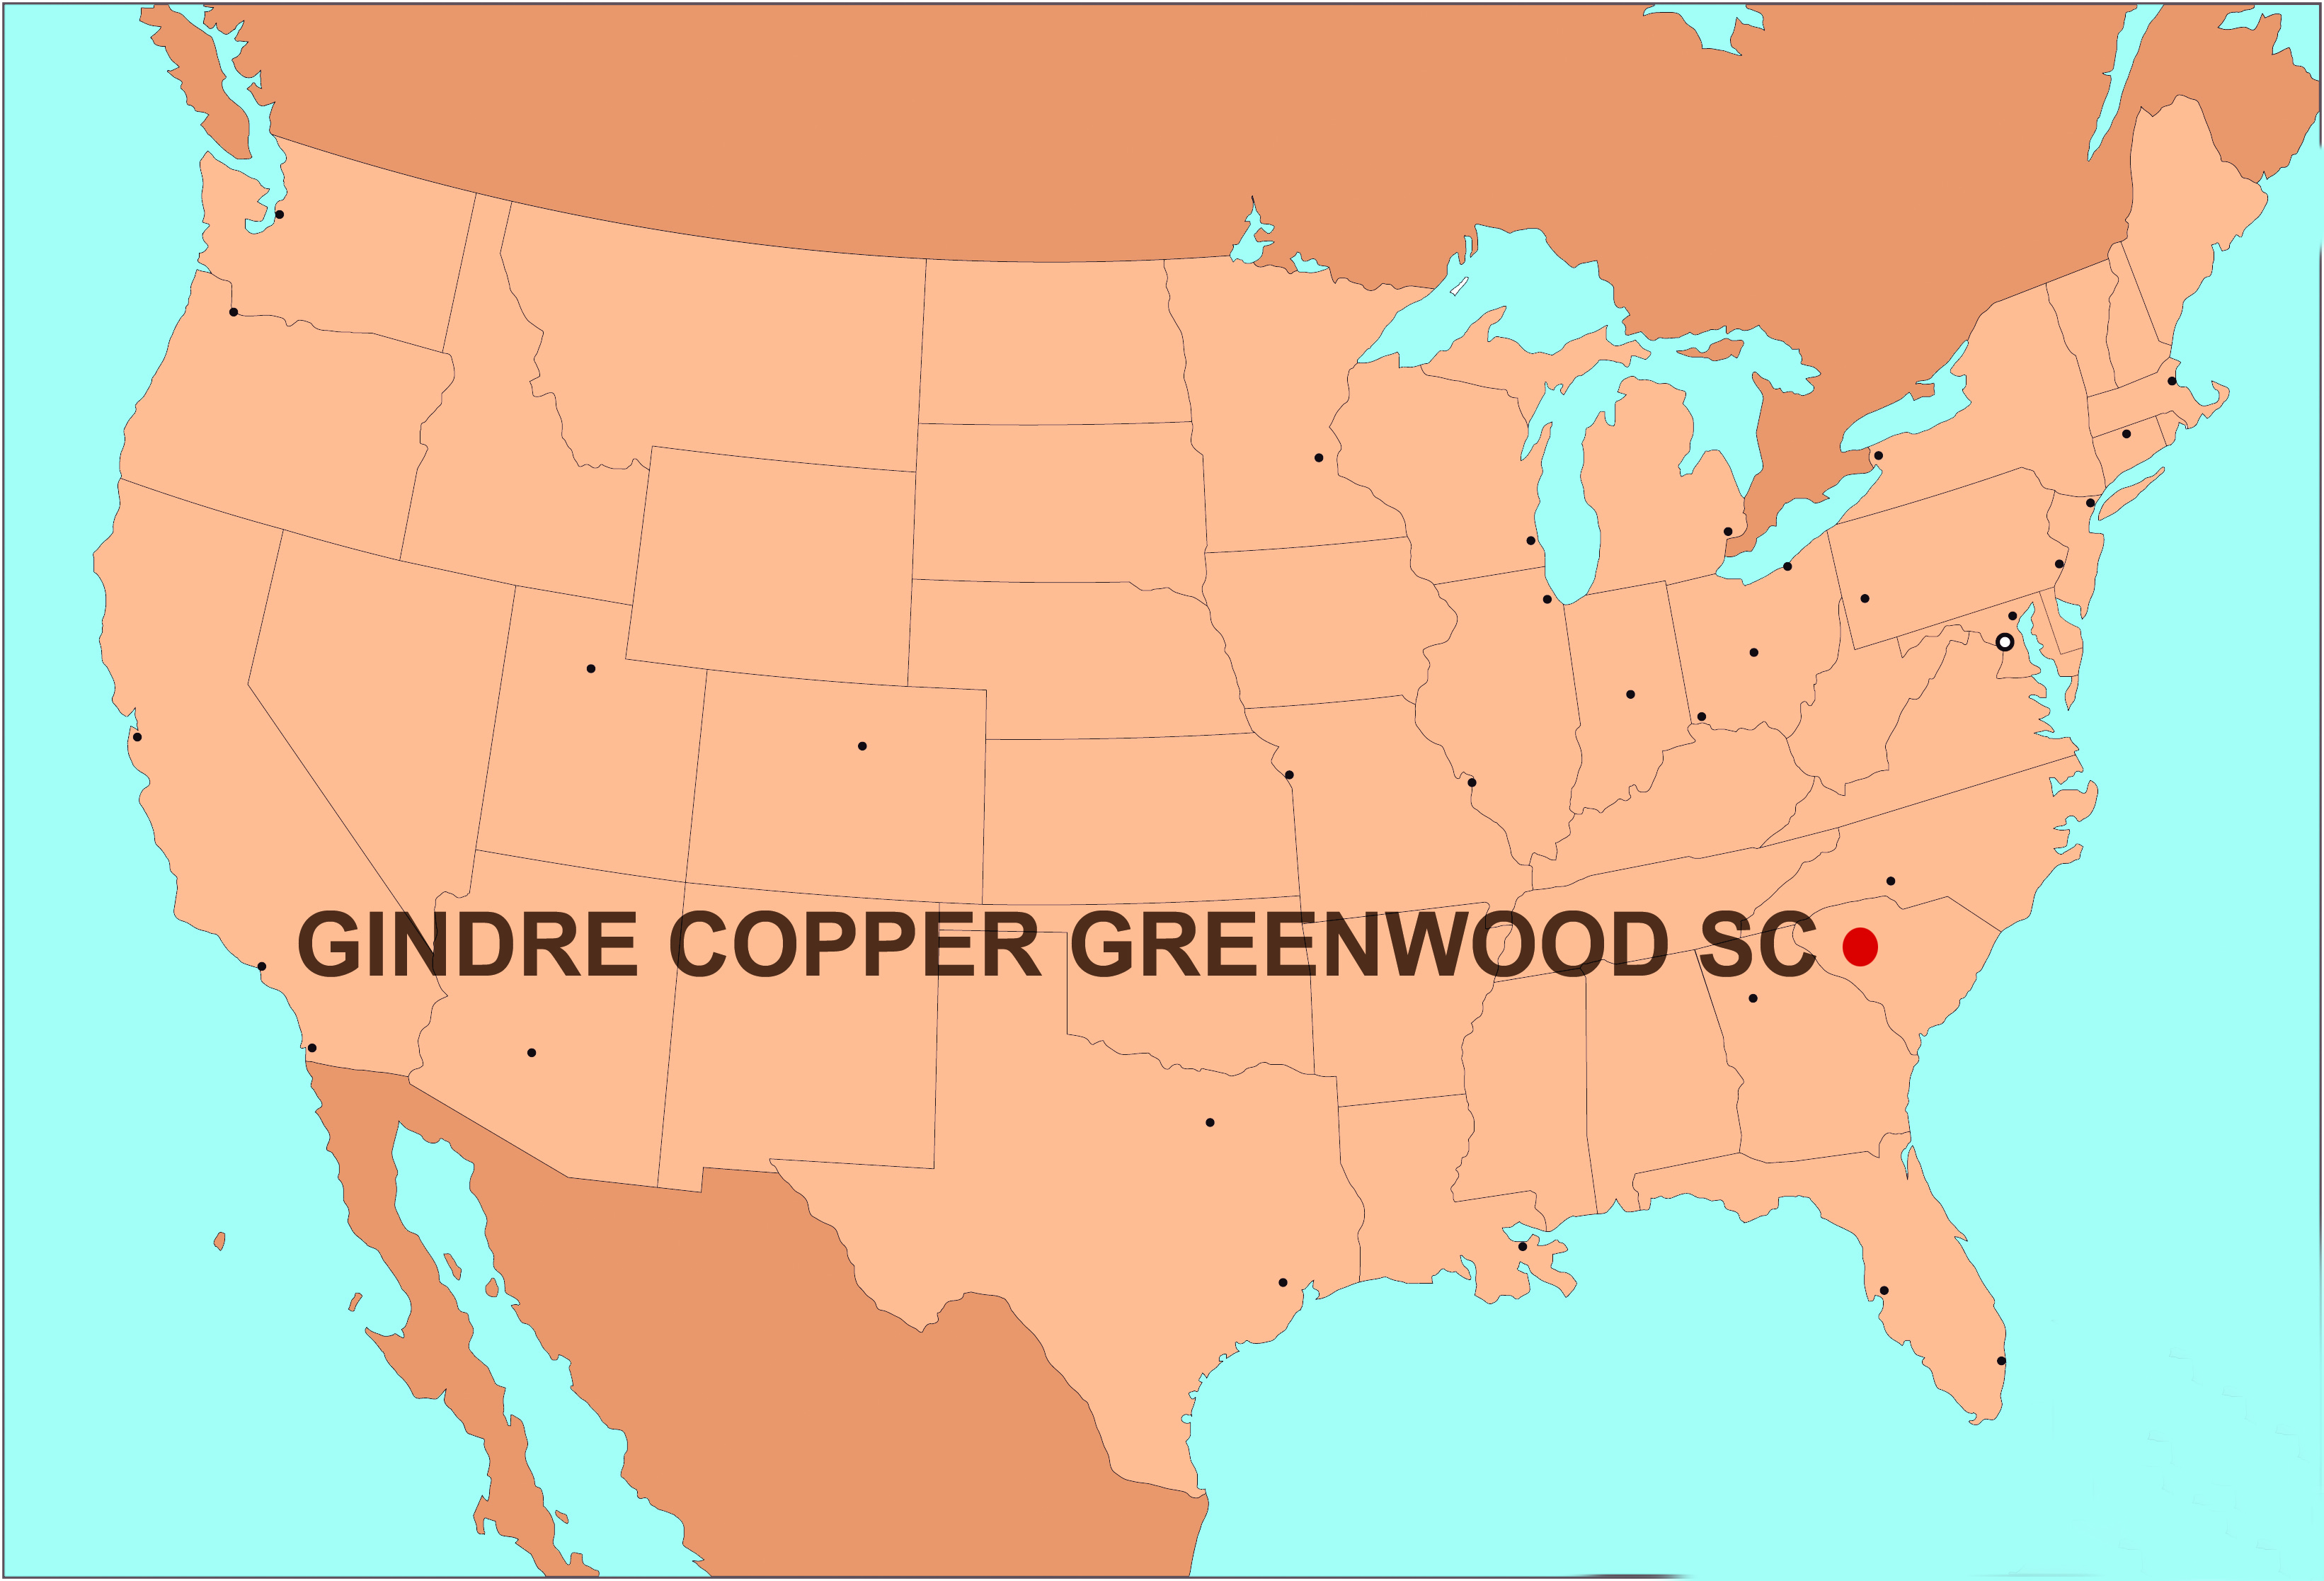 Gindre copper in USA